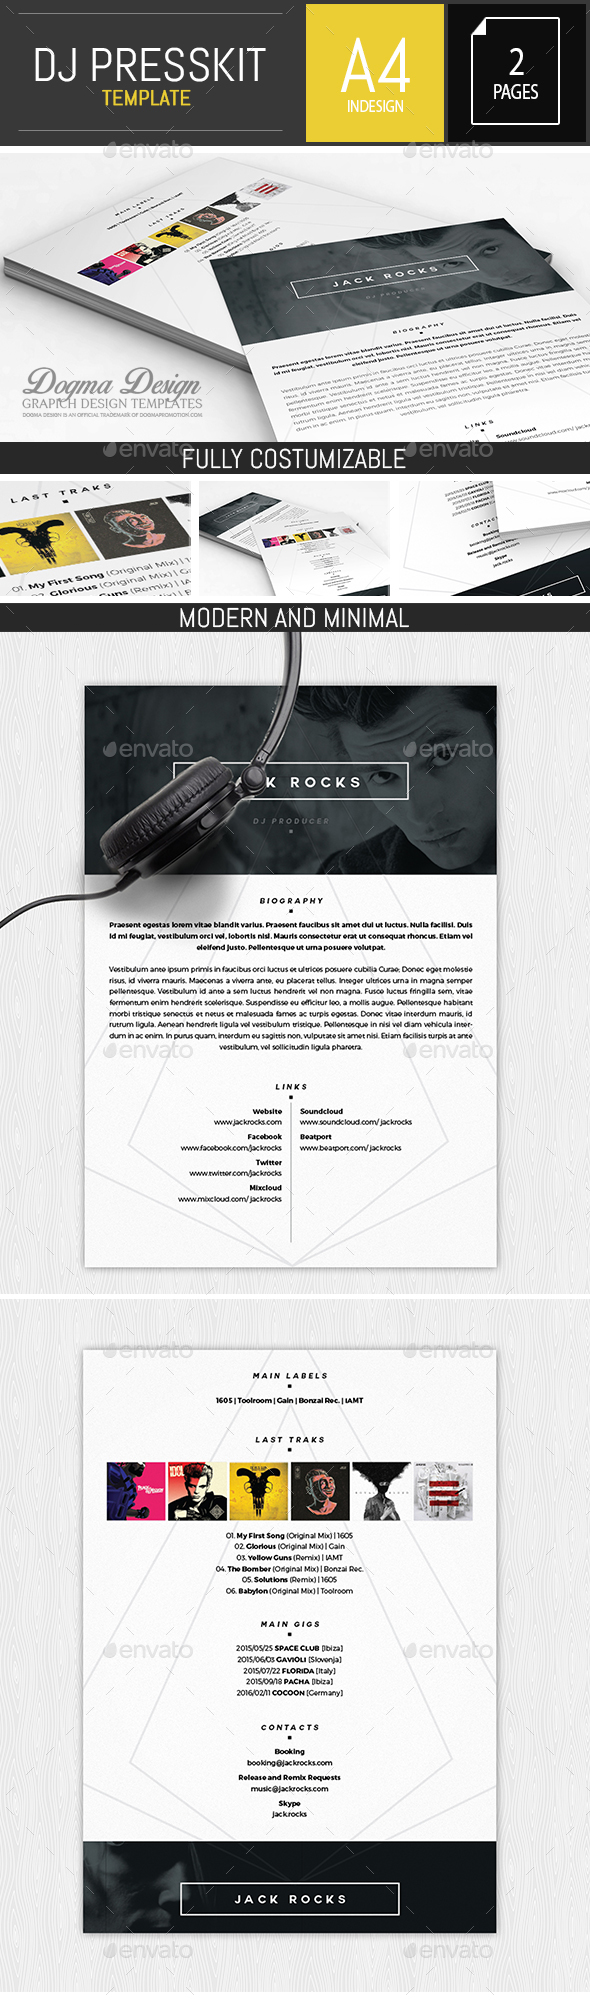 Musician dj press kit resume indesign template by for Dj press kit template free